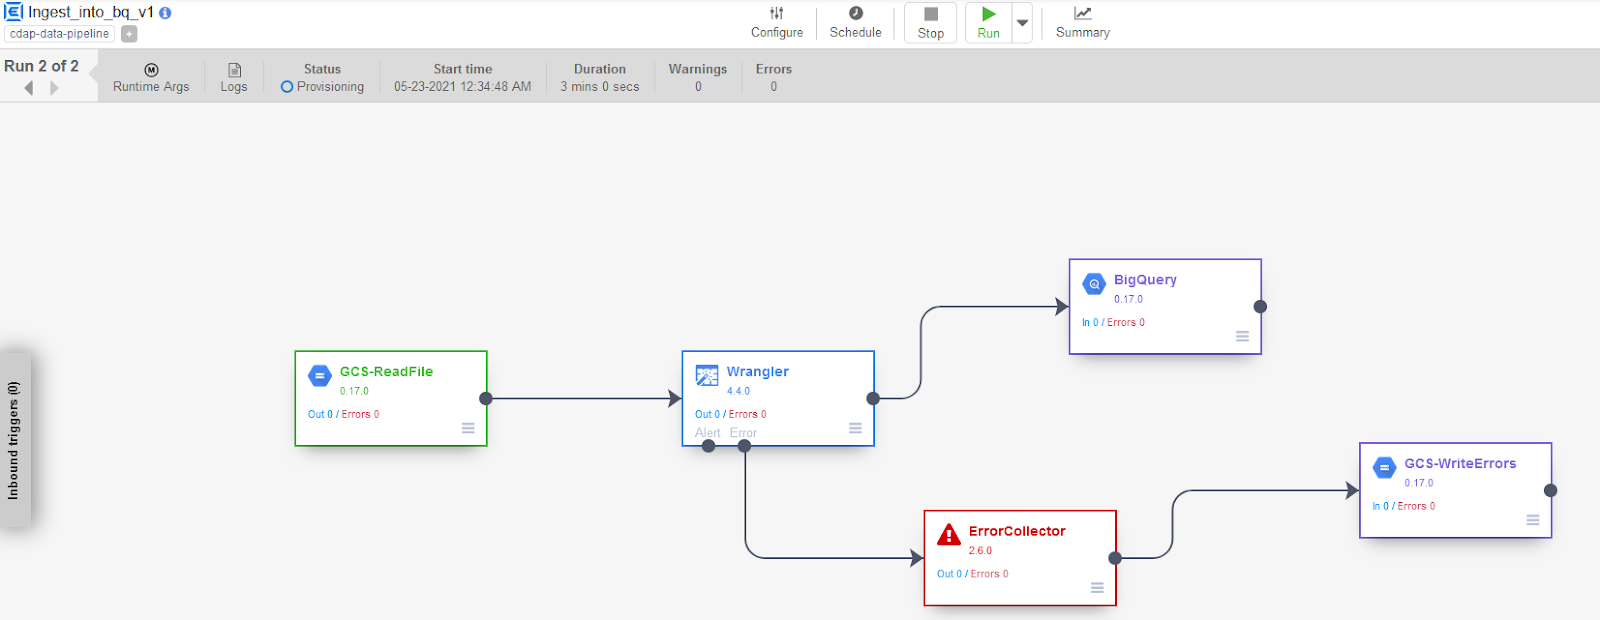 umair-akbar-0*GMtSJqPT3SRYemr6 - End-to-end automated Analytics workload using Cloud Functions — Data Fusion — BigQuery and Data Studio